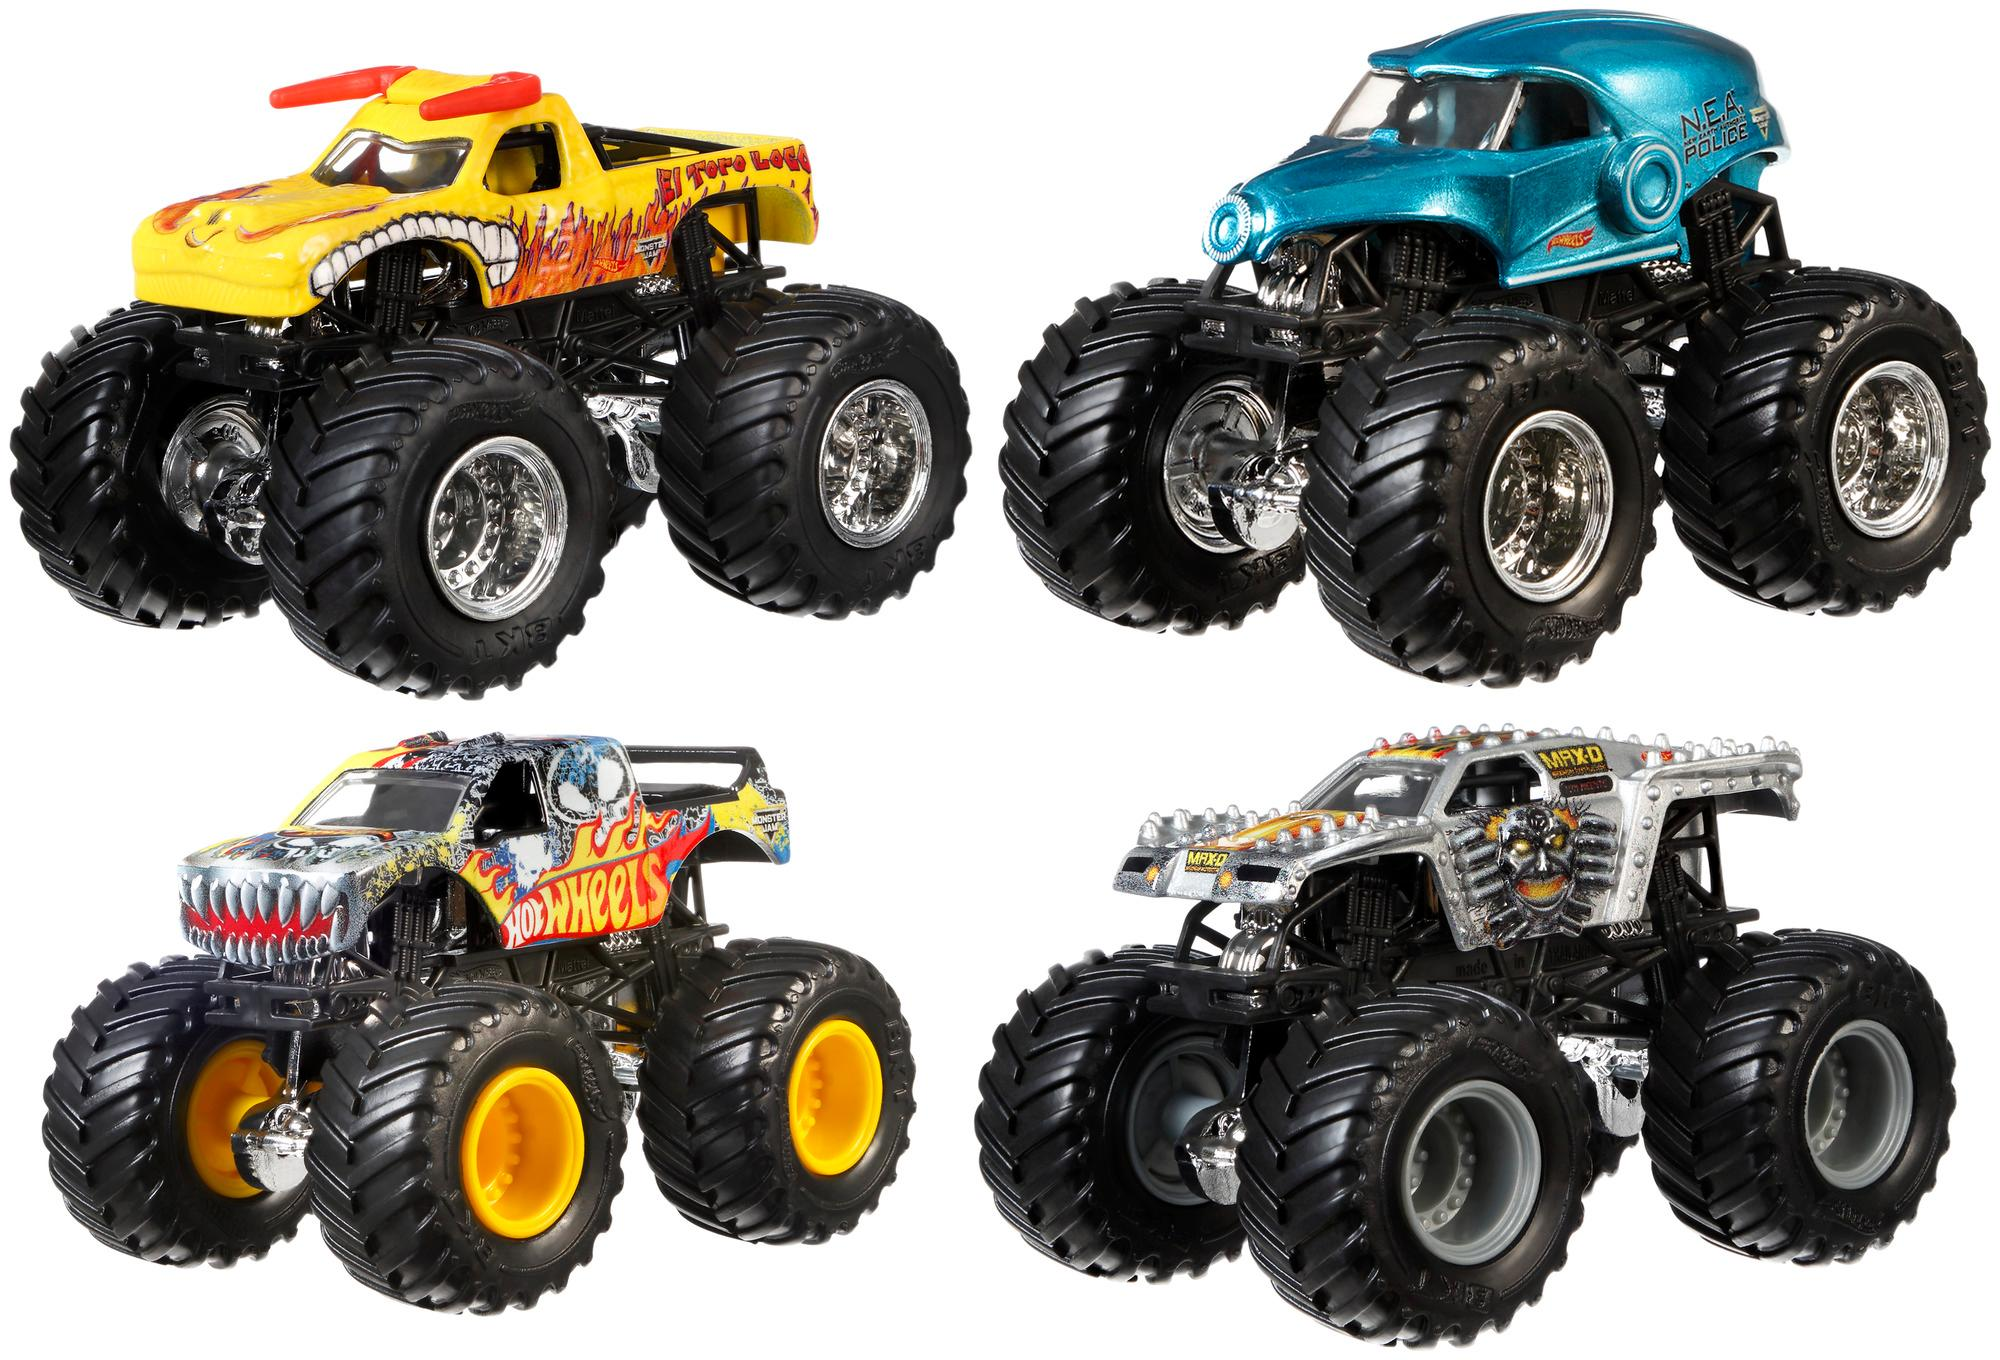 hot wheels monster jam tour favorites styles may vary toys games. Black Bedroom Furniture Sets. Home Design Ideas